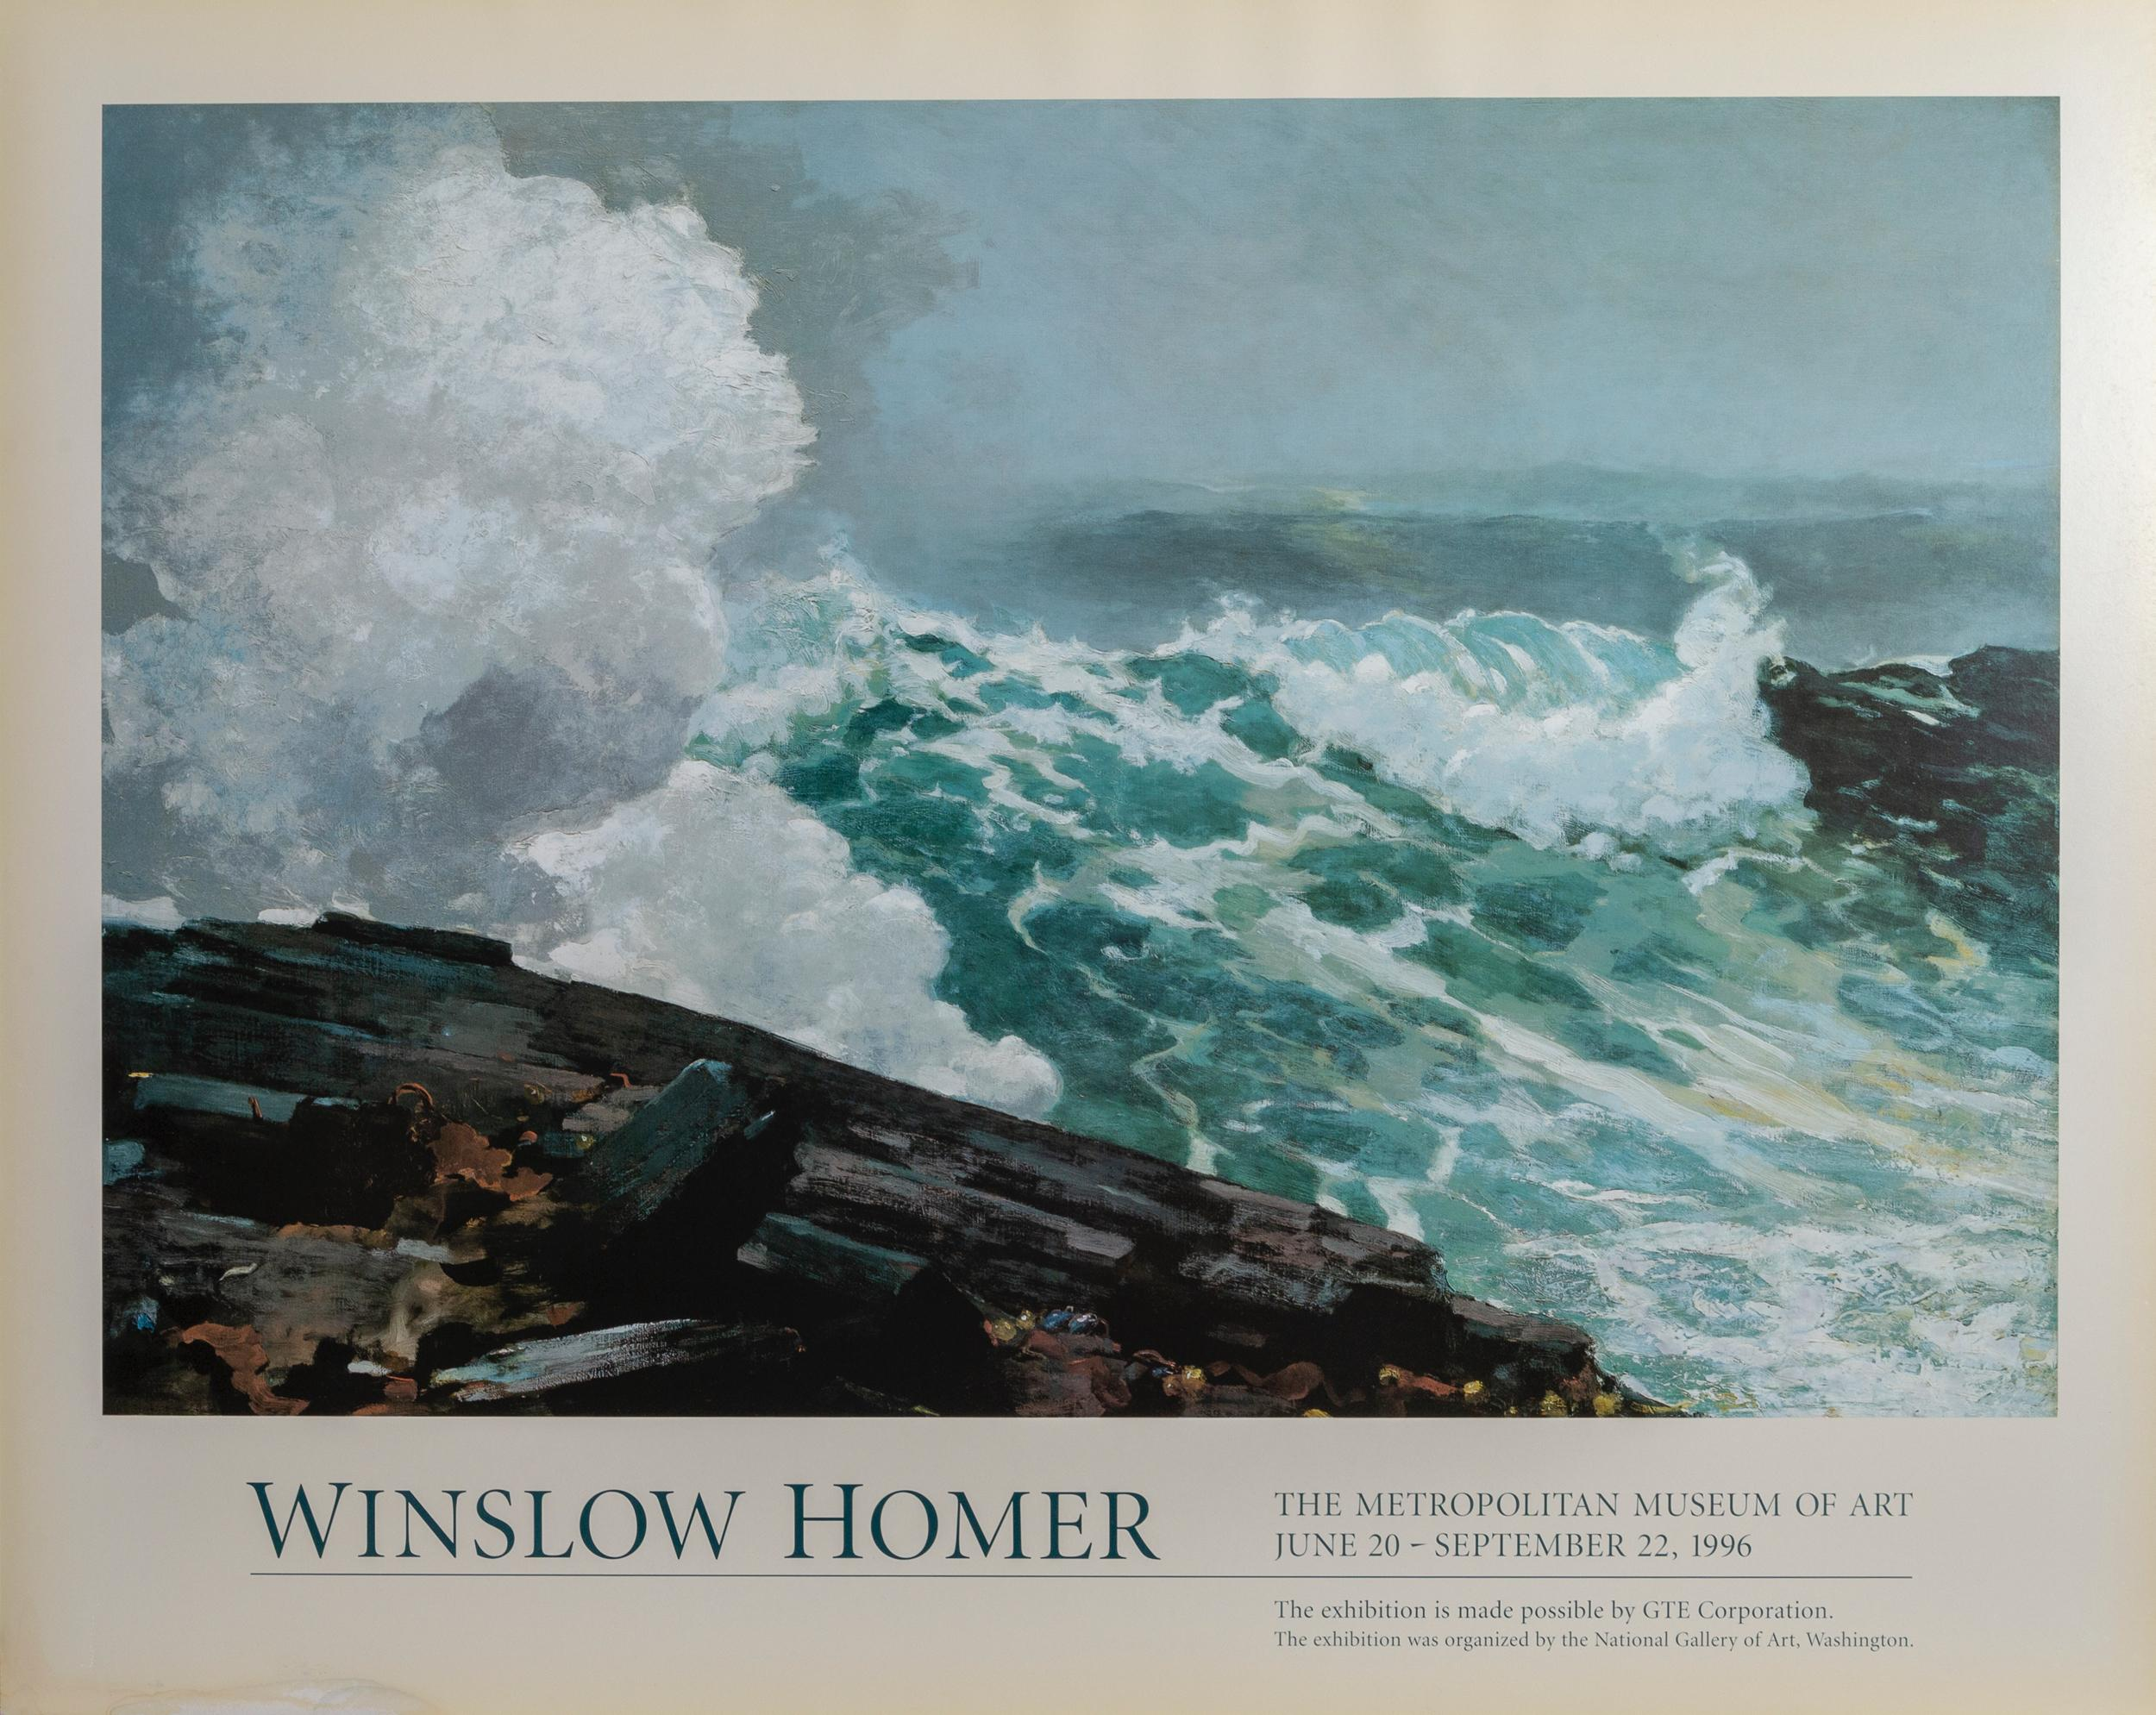 Winslow Homer, The Metropolitan Museum of Art - Breaking Waves, Poster on foamcore